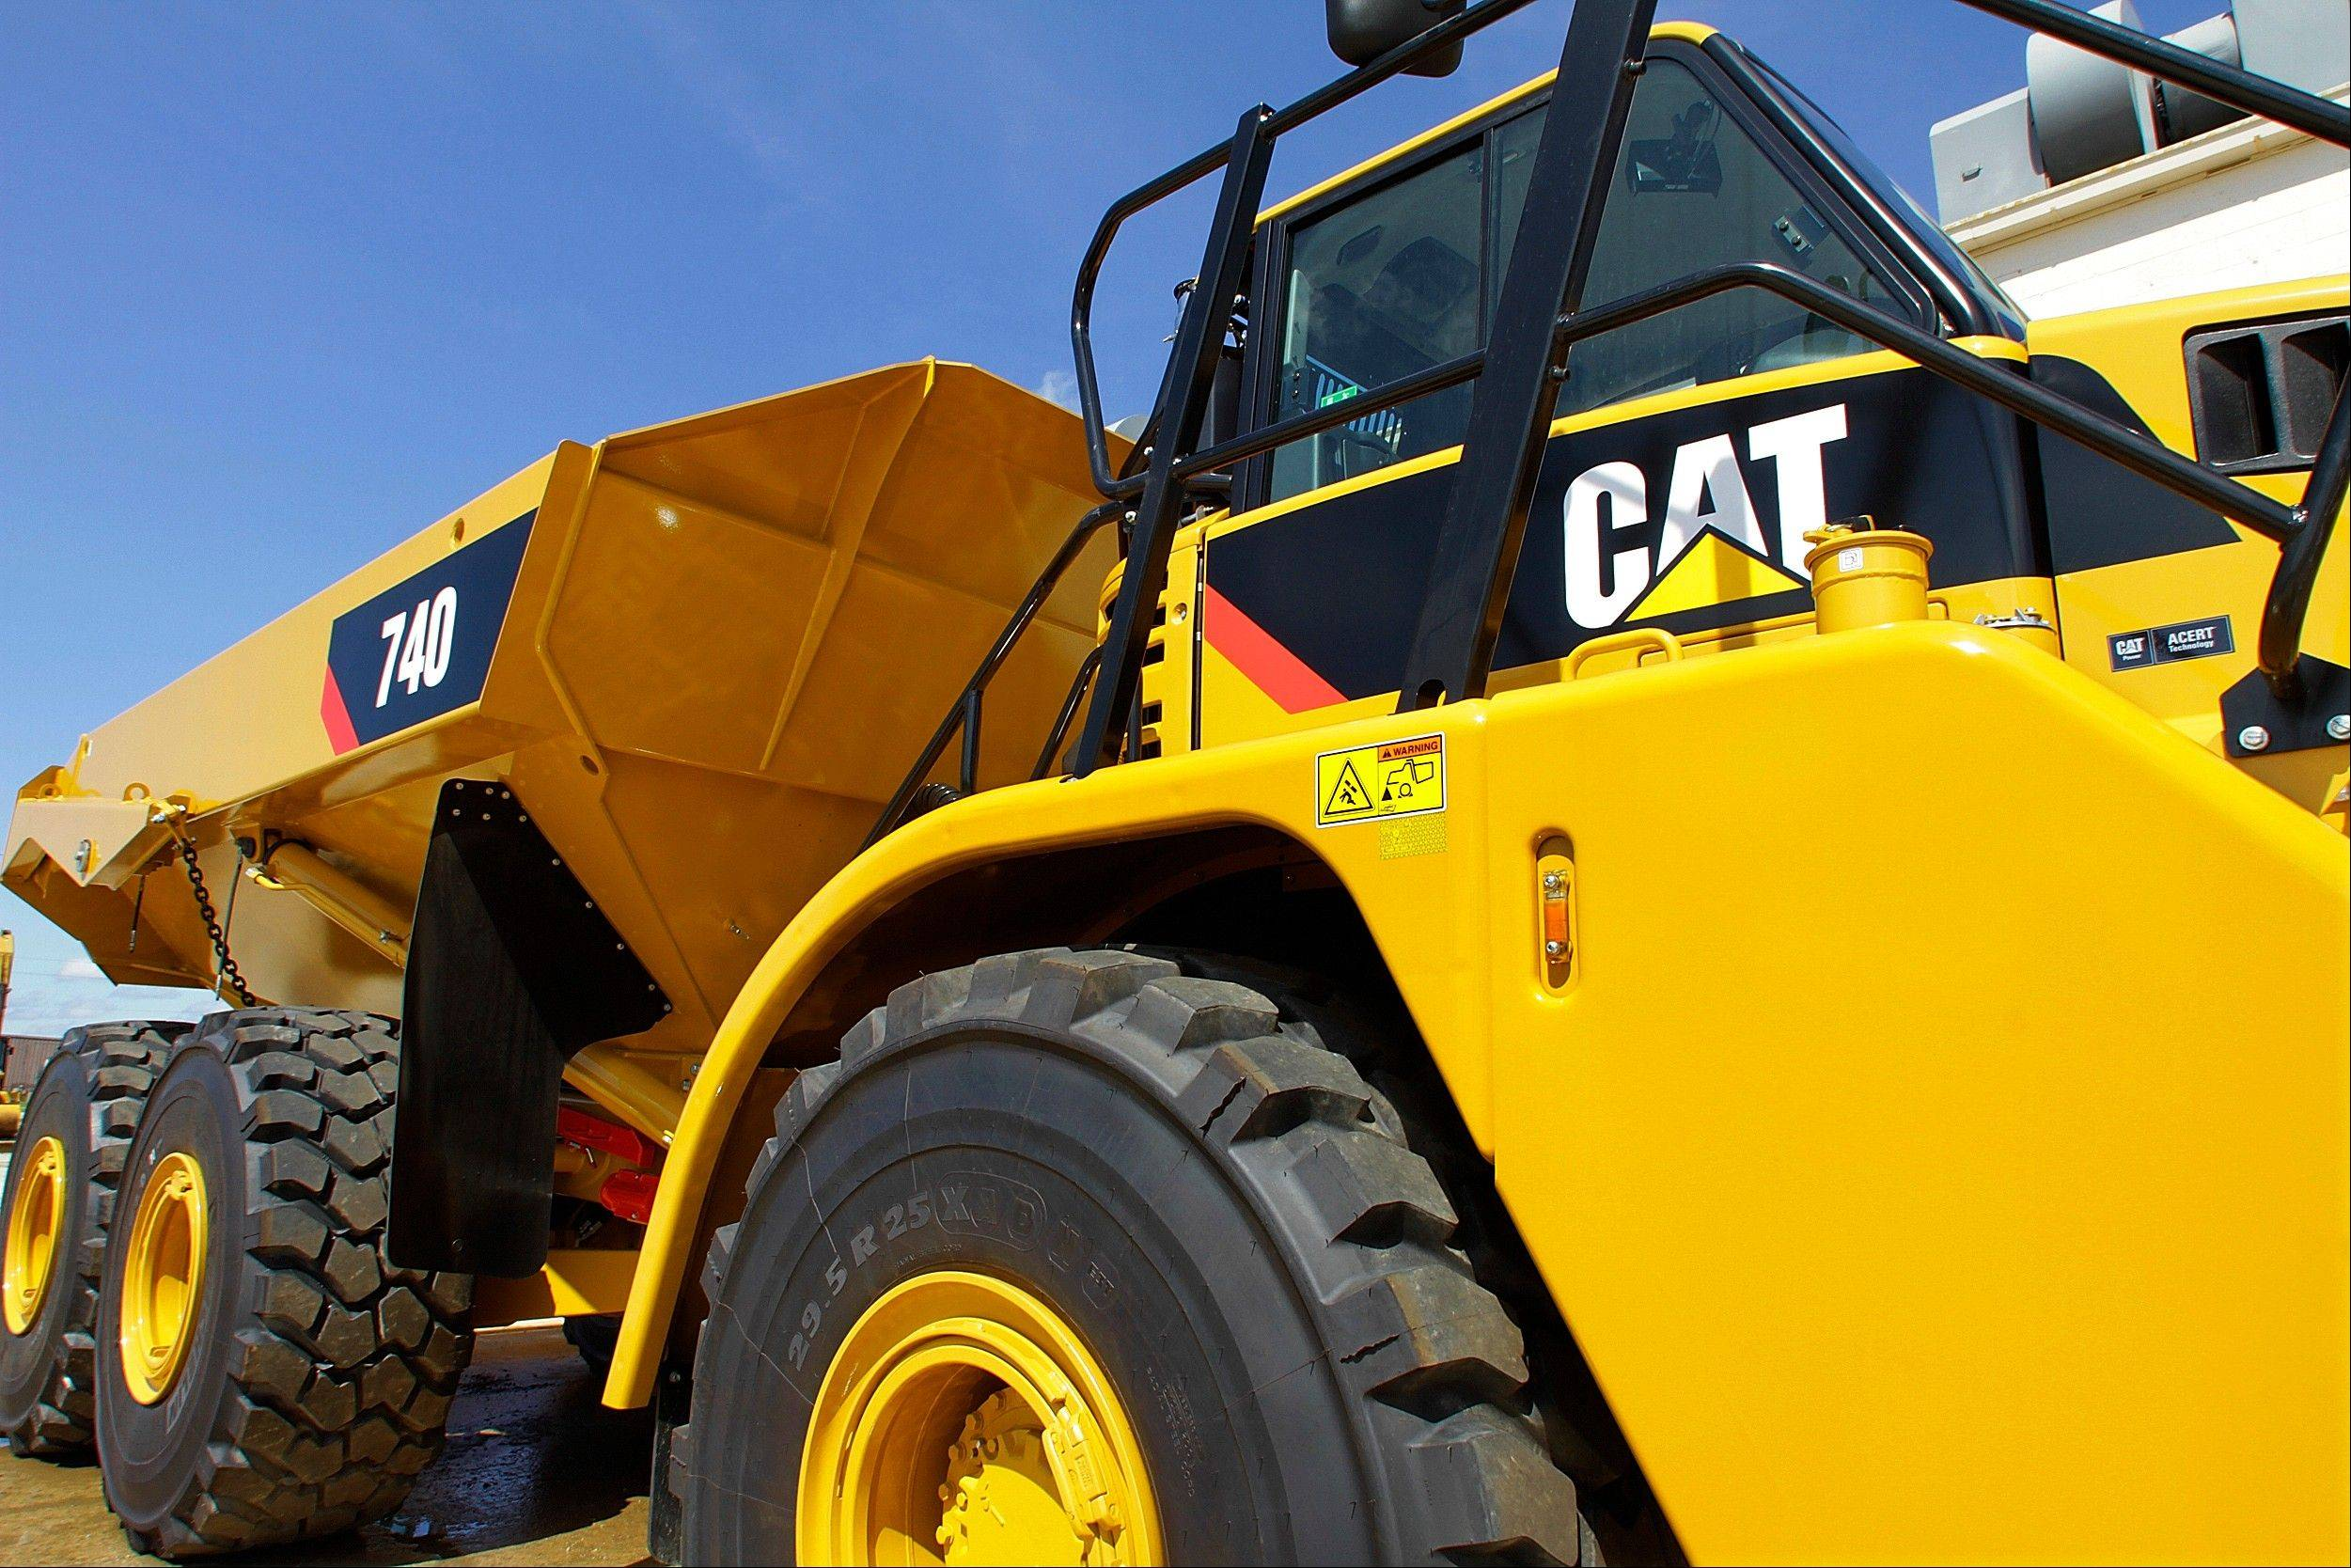 Caterpillar Inc. has ruled Illinois out of plans to relocate a factory and 1,400 jobs from Japan. The Peoria-based heavy-equipment maker cited both logistical problems and ongoing concerns about the state's business climate.